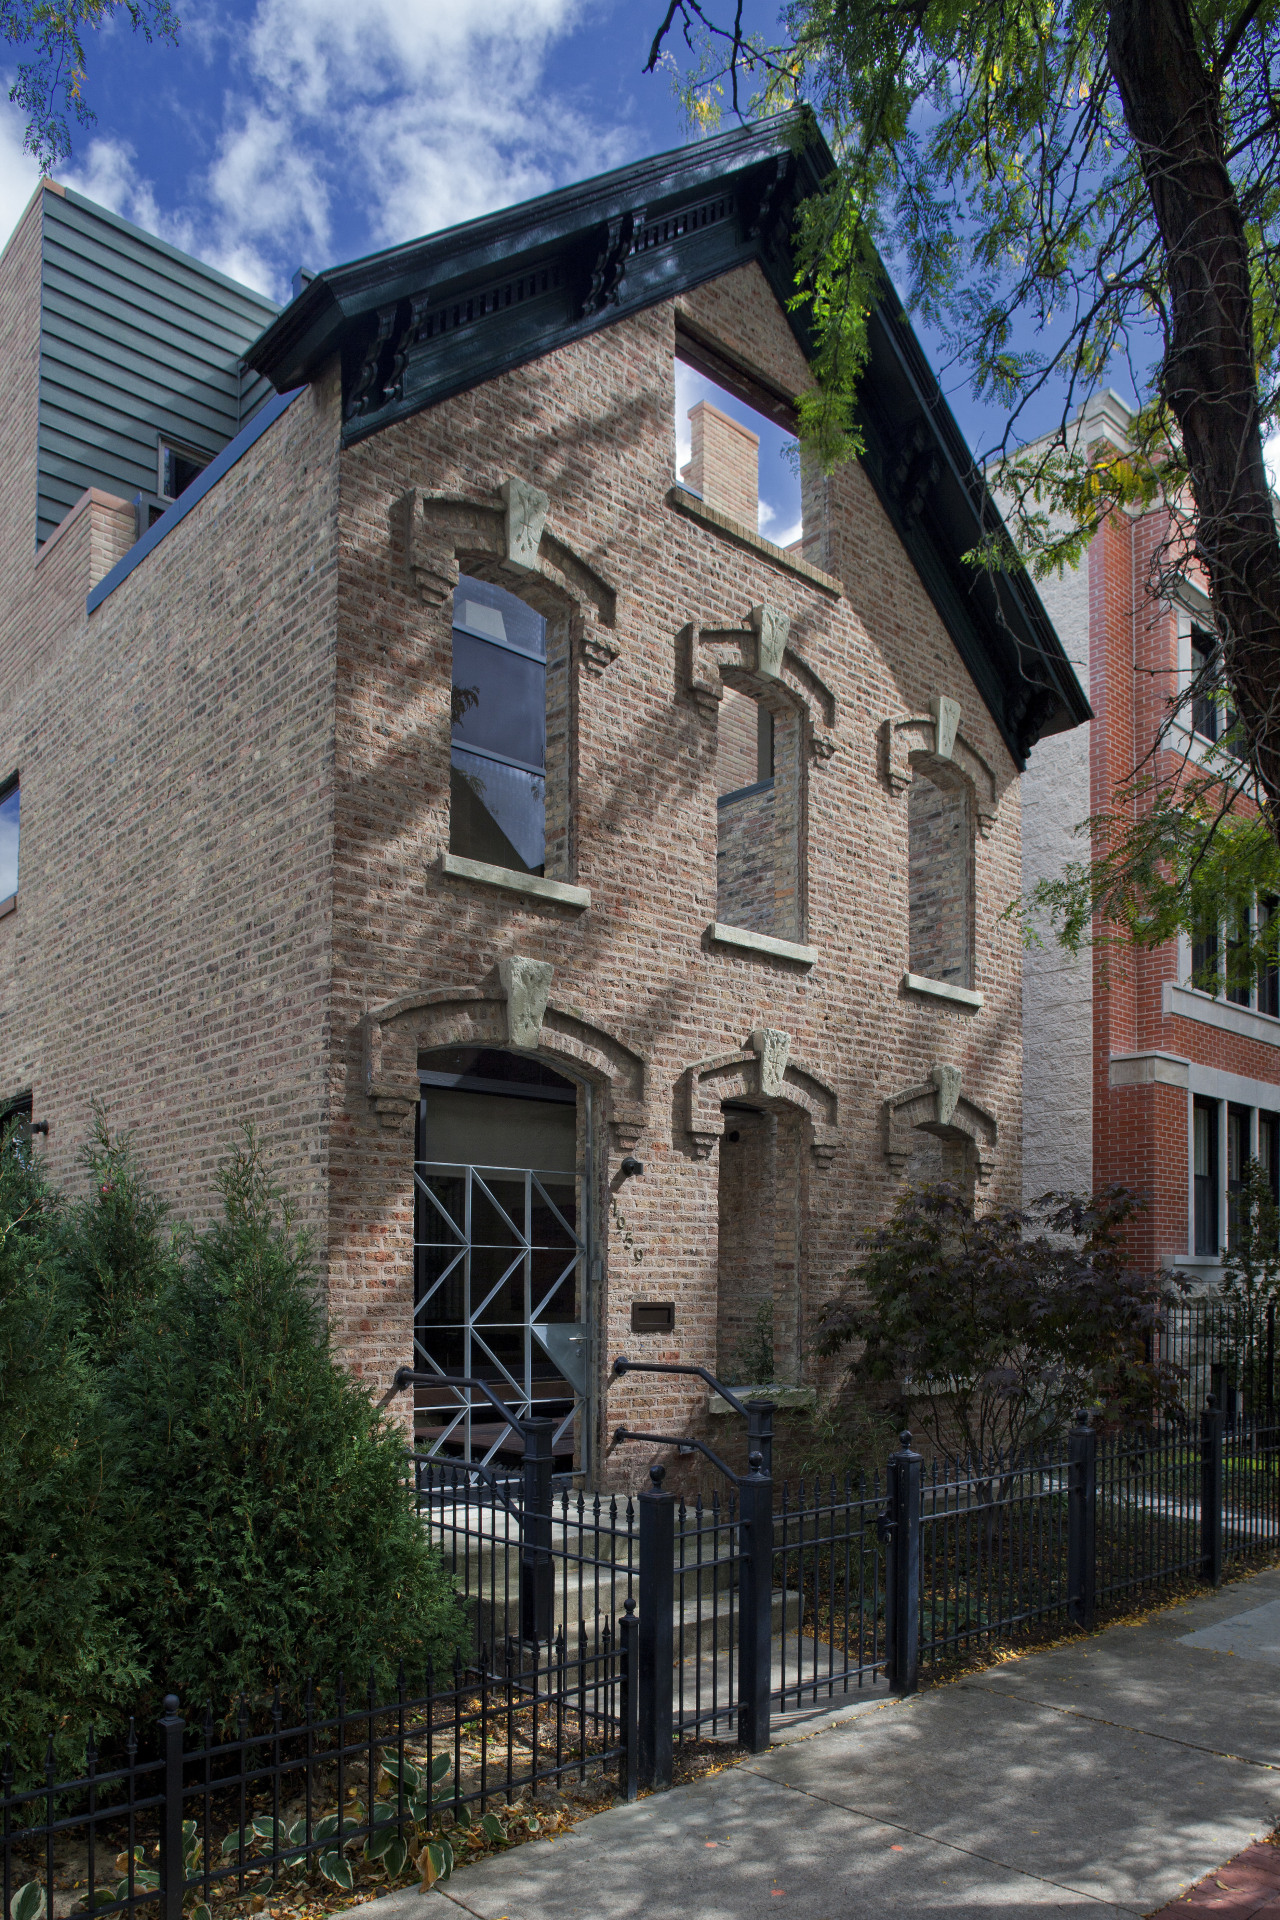 View of a renovated three-story home, built to apartment, architecture, building, city, cottage, estate, facade, historic house, home, house, landmark, mansion, neighbourhood, property, real estate, residential area, tree, window, black, gray